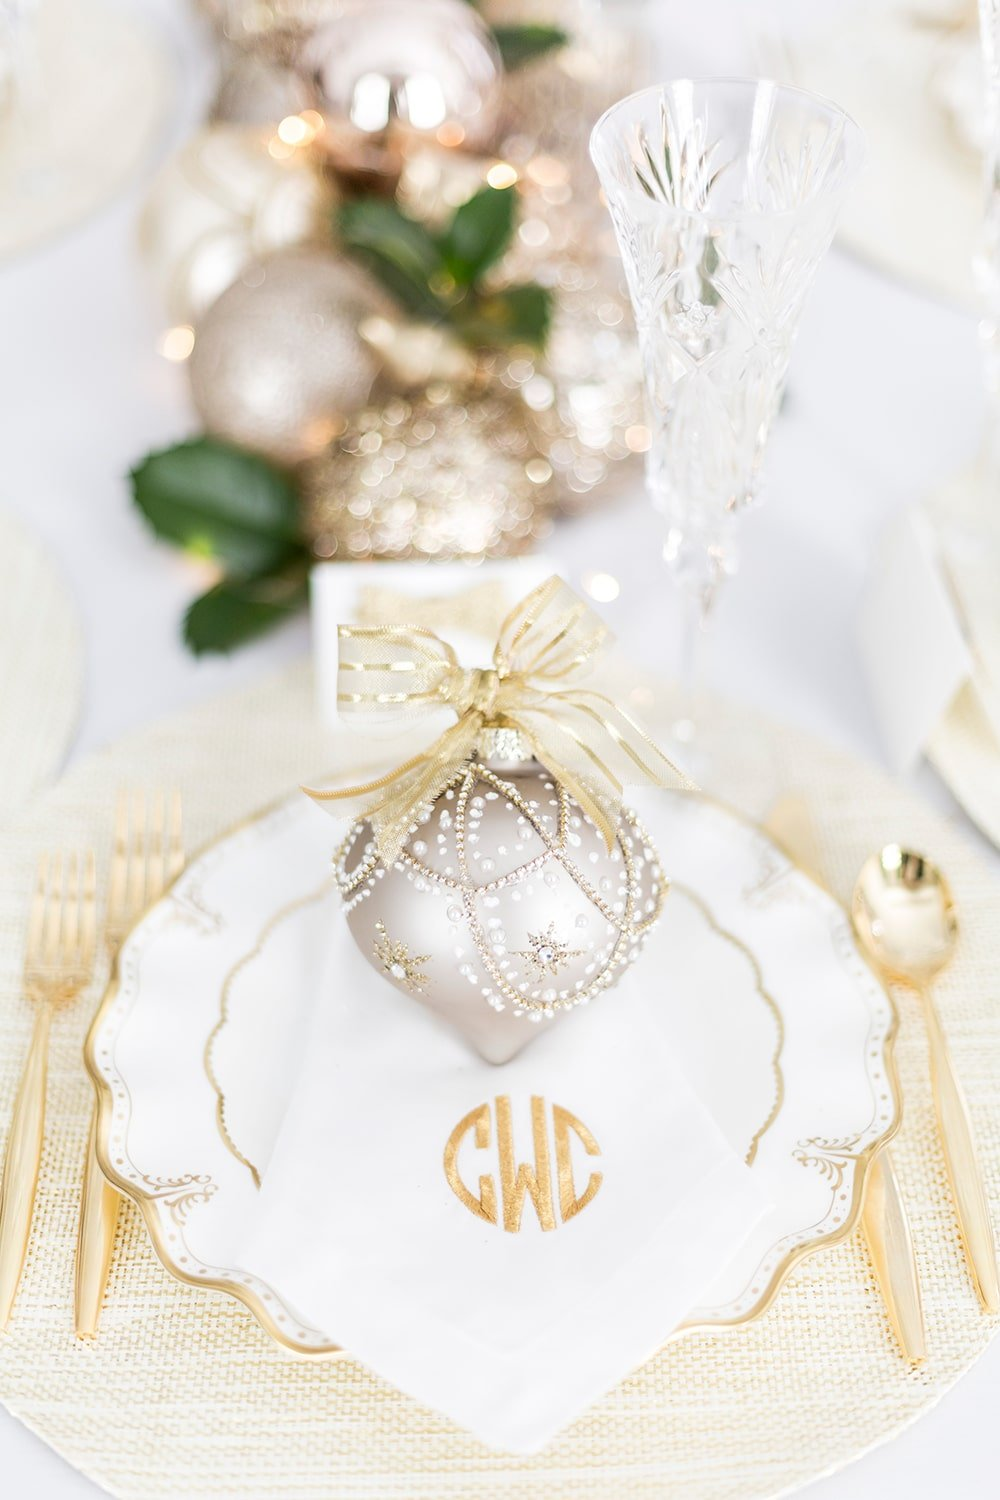 set your holiday table with glitz and glam